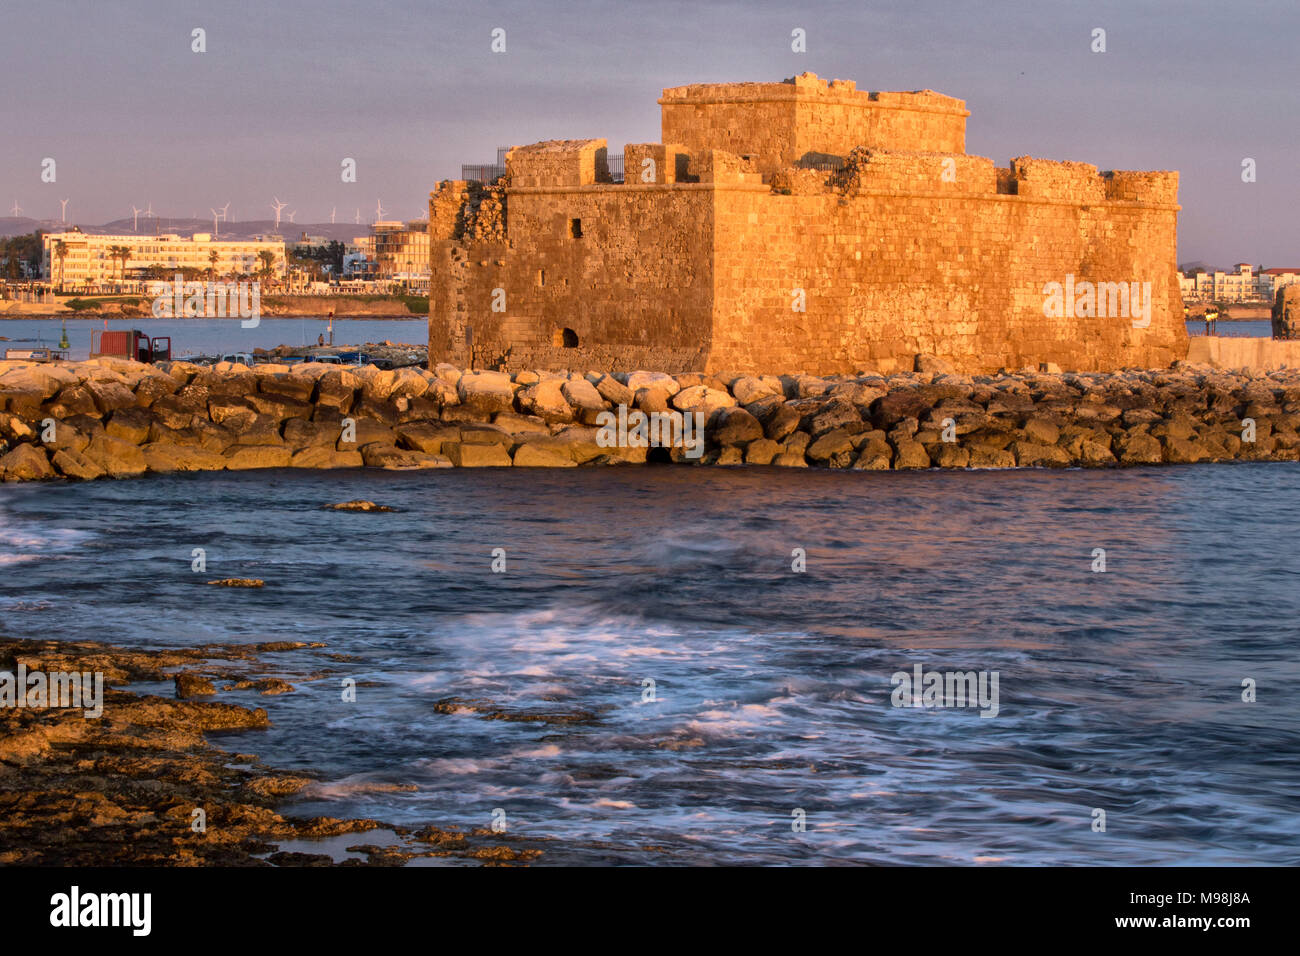 Paphos castle / fort in kato paphos harbour on the mediterranean coast of paphos, cyprus, mediterranean, europe - Stock Image